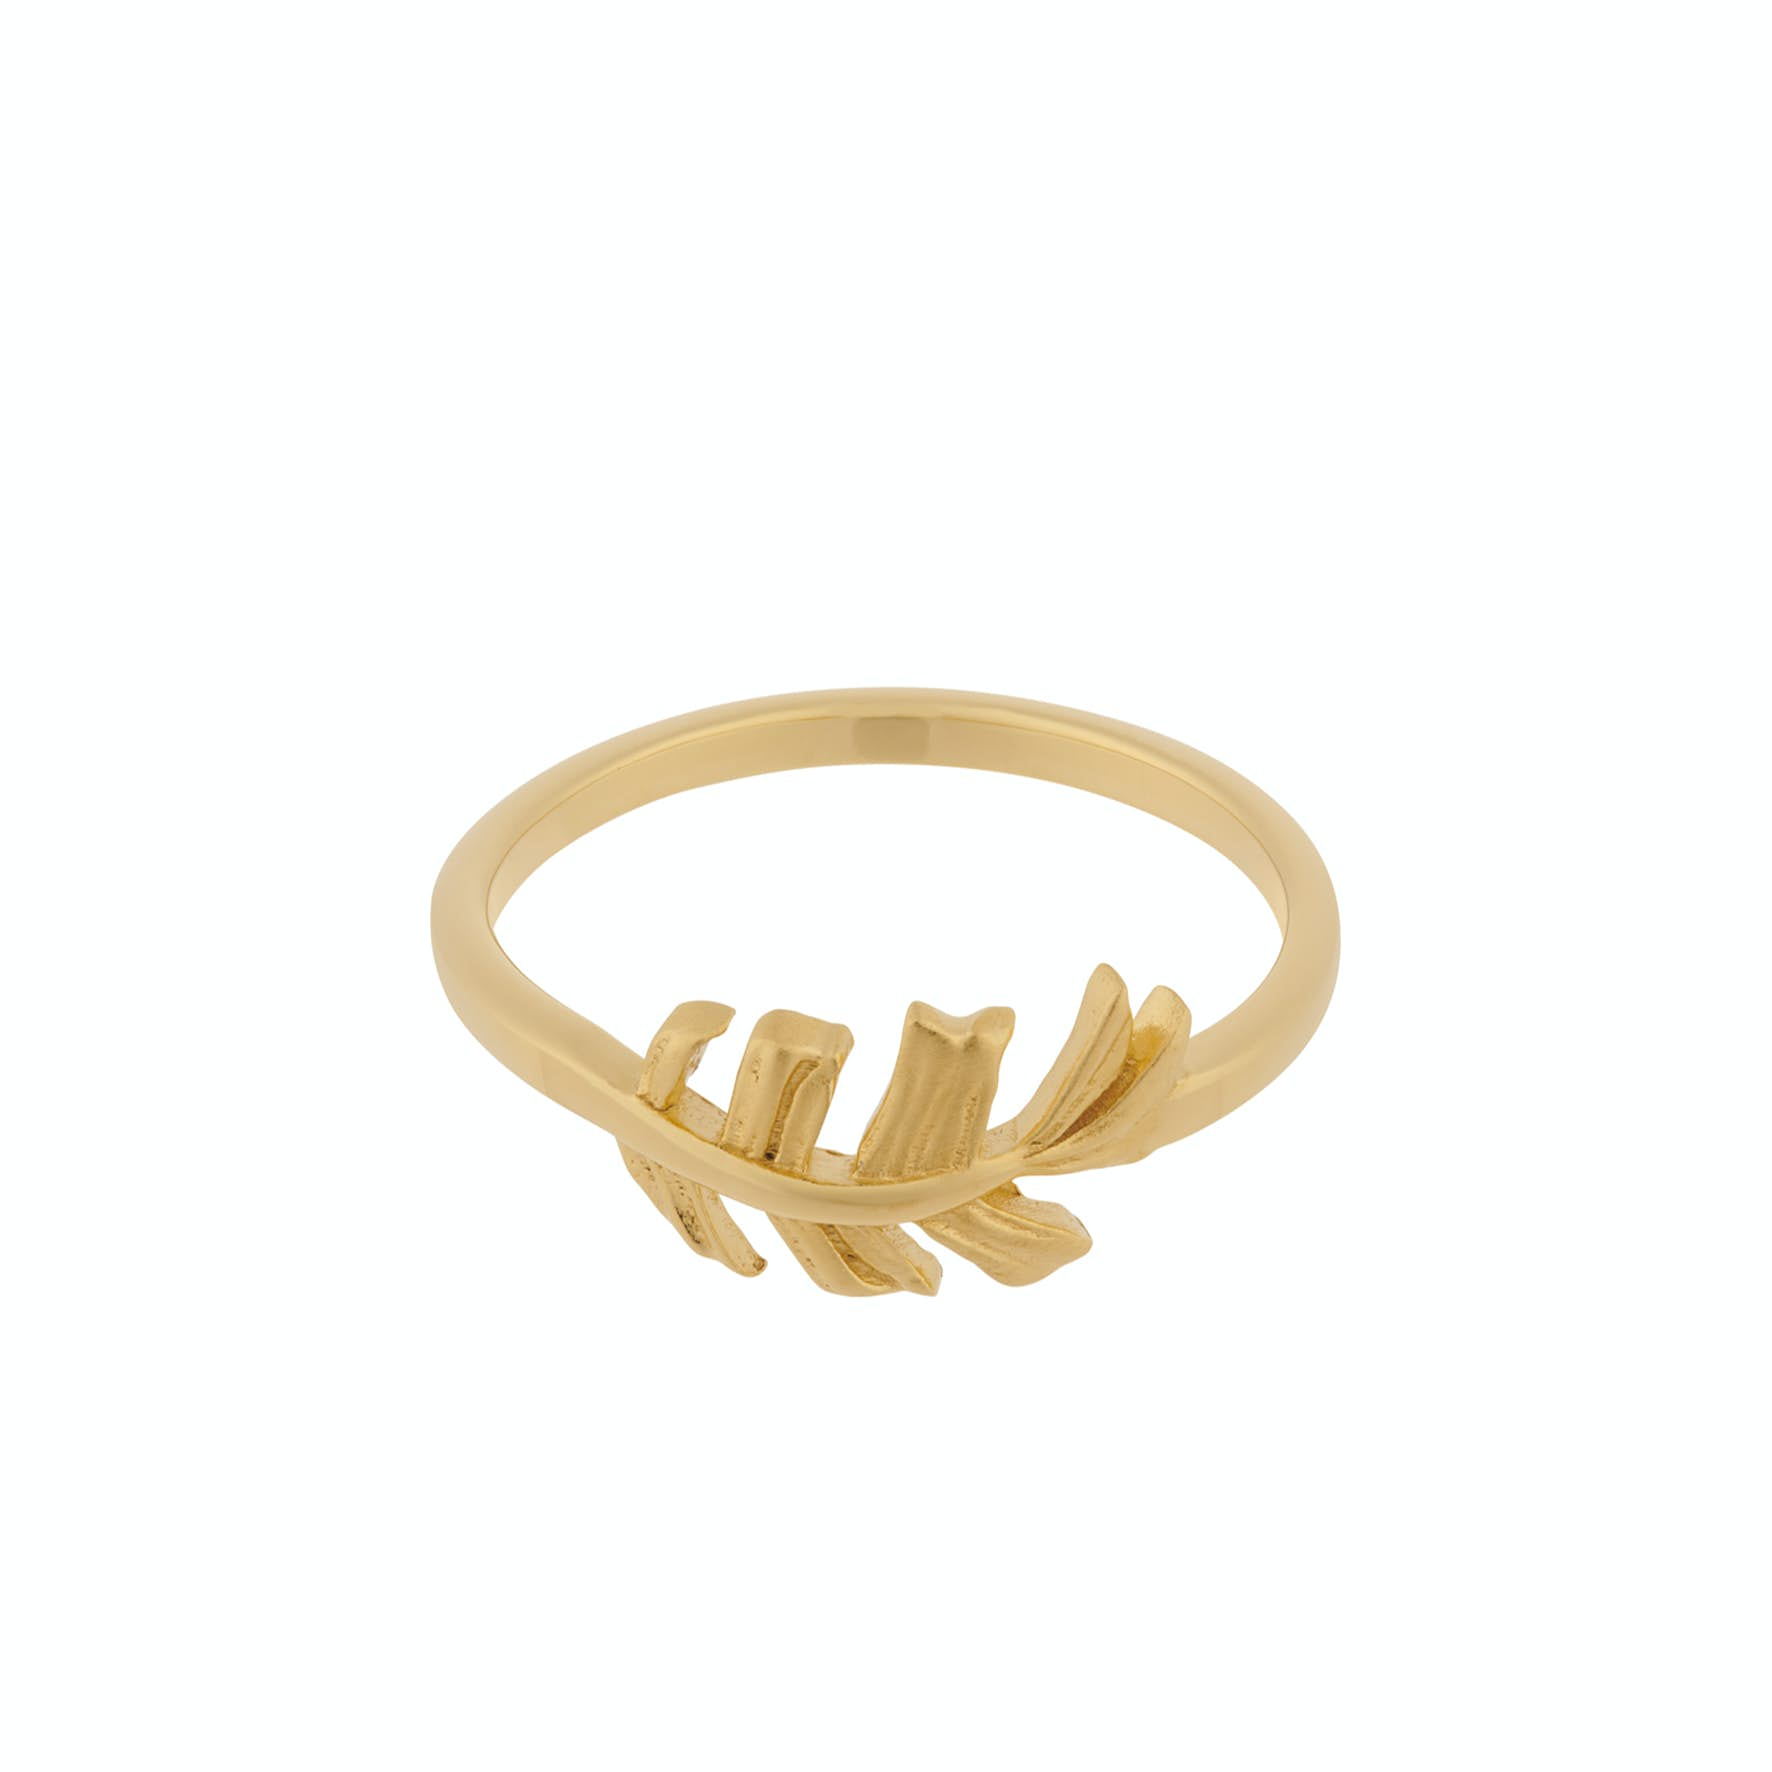 Leaf Ring from Pernille Corydon in Goldplated-Silver Sterling 925